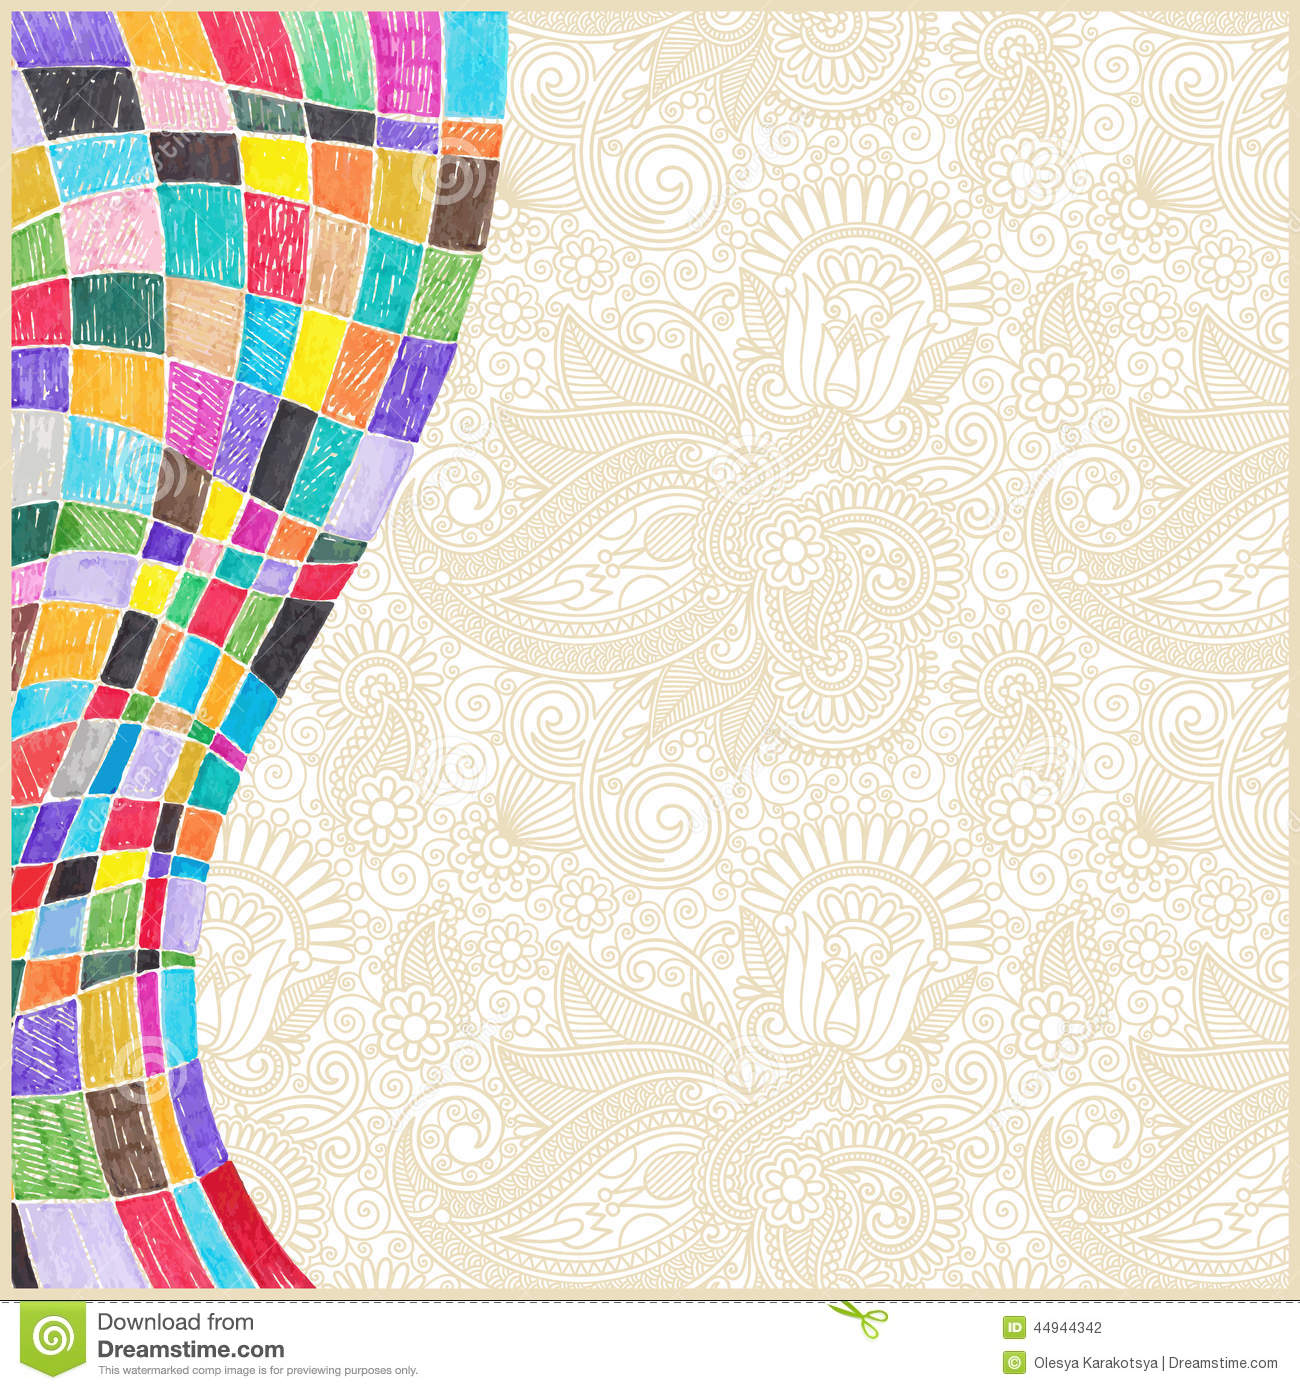 Doodle Marker Drawing Abstract Background Design Stock